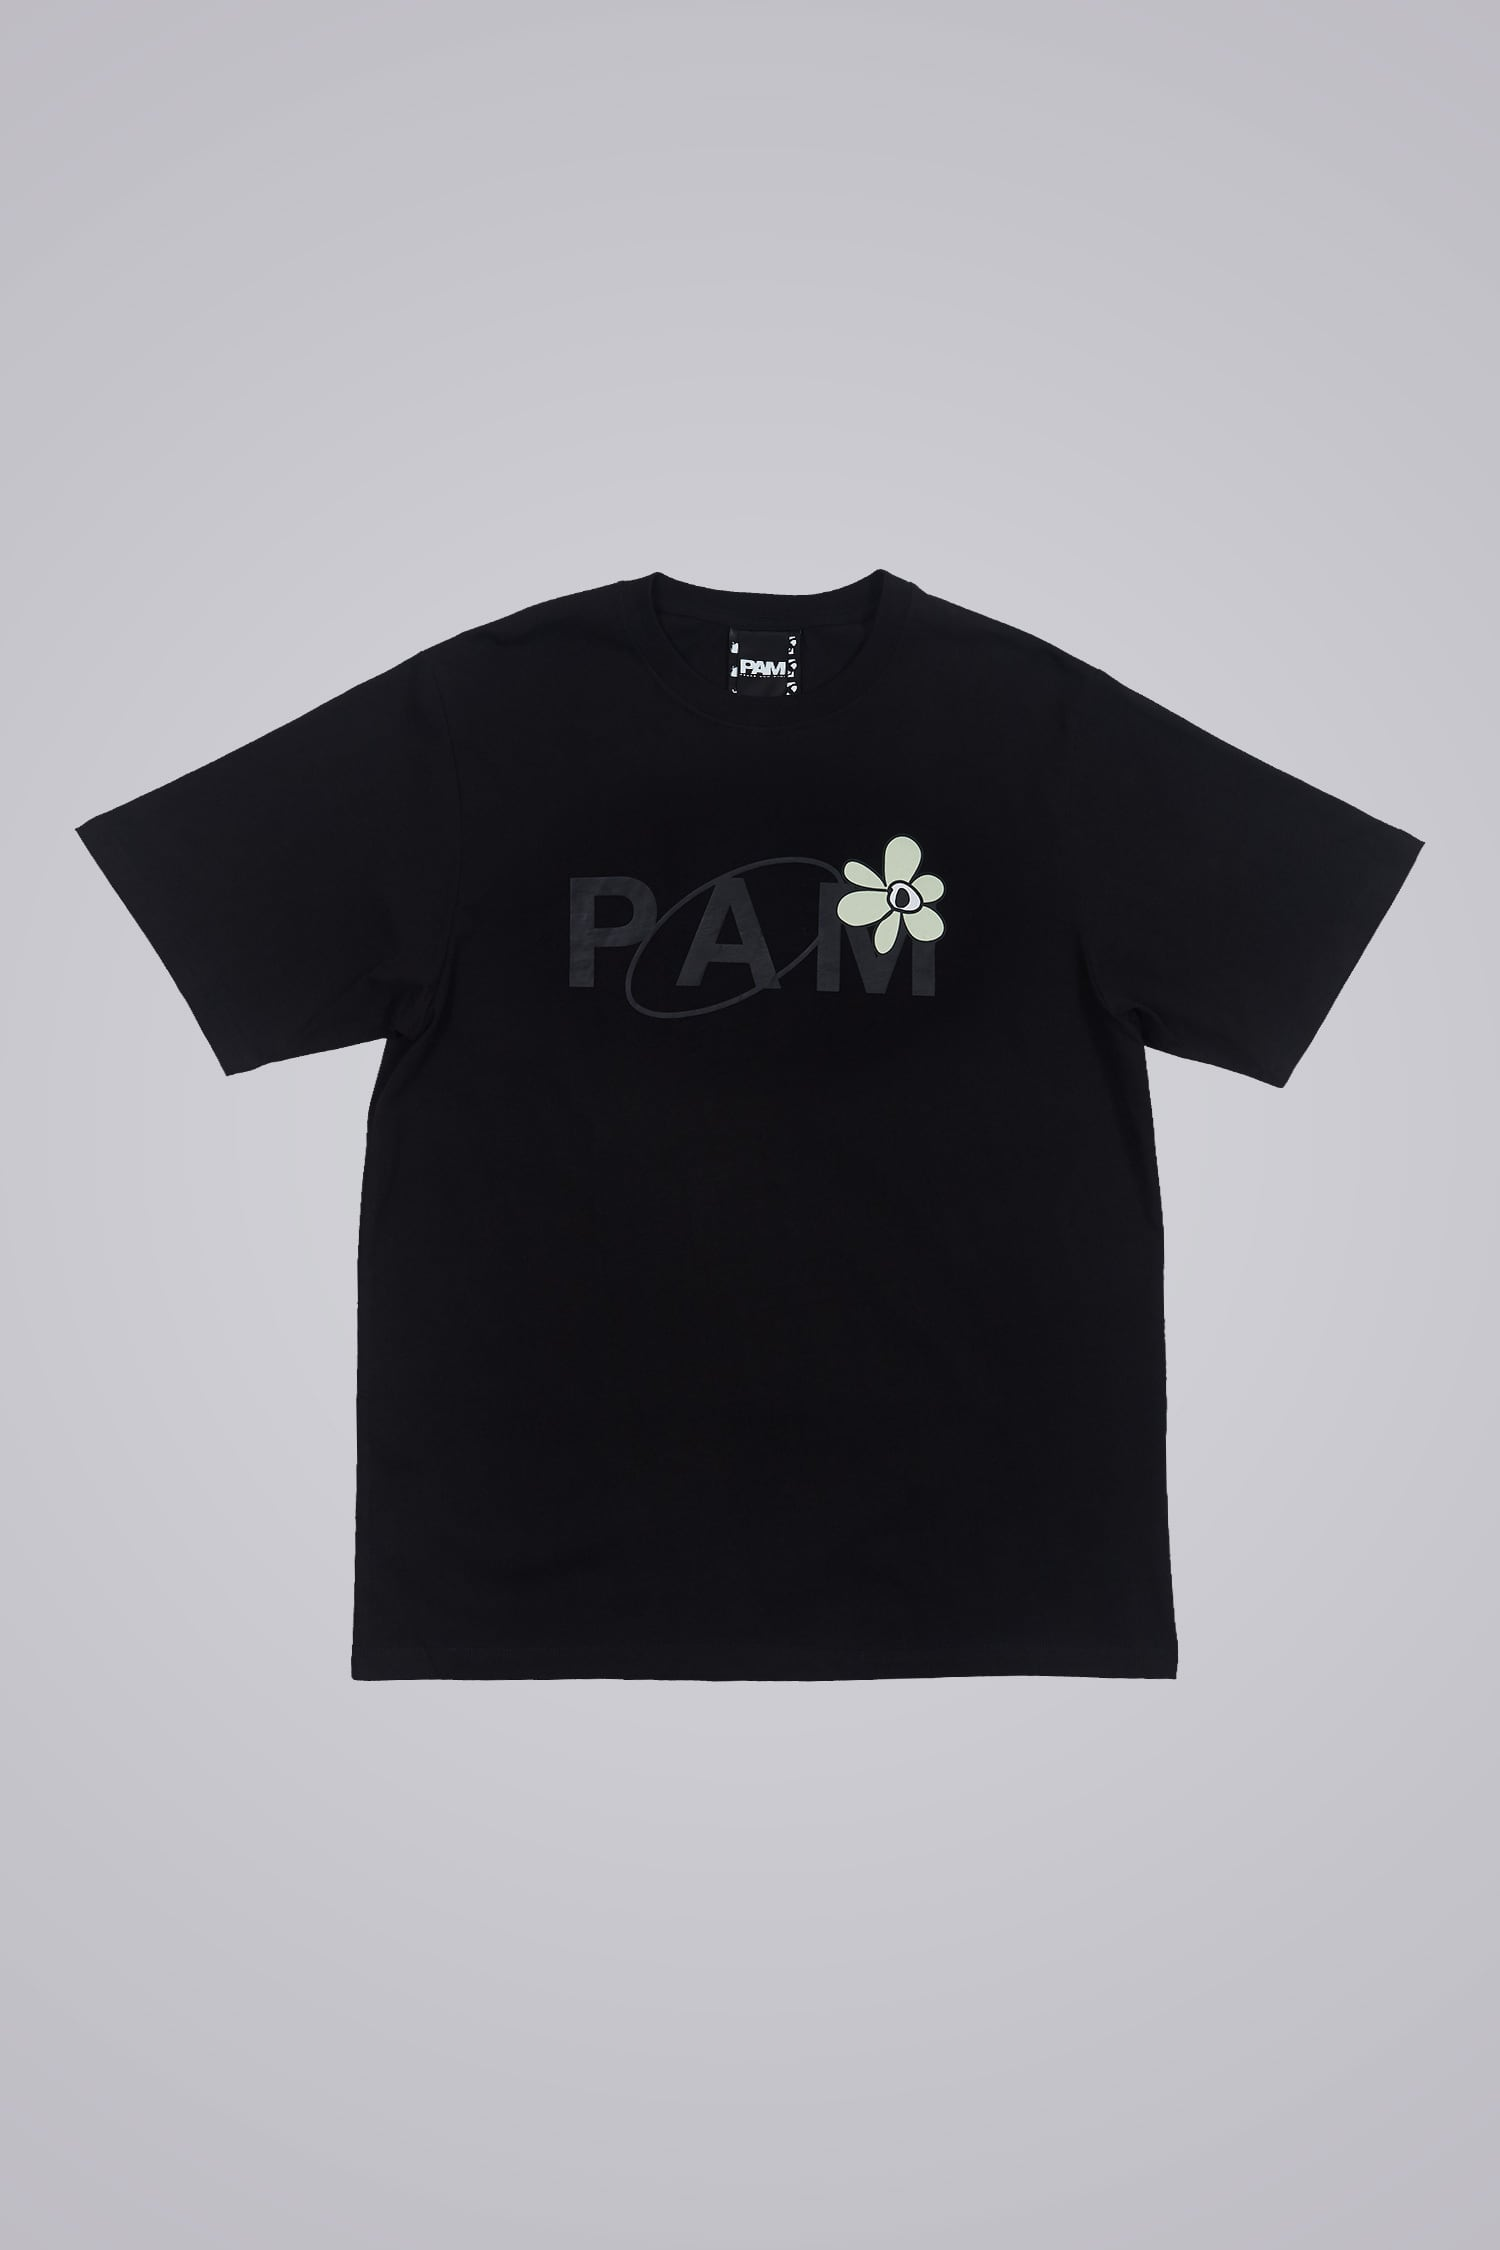 P.A.M. (Perks And Mini) / SEEING GESTURE SS TEE